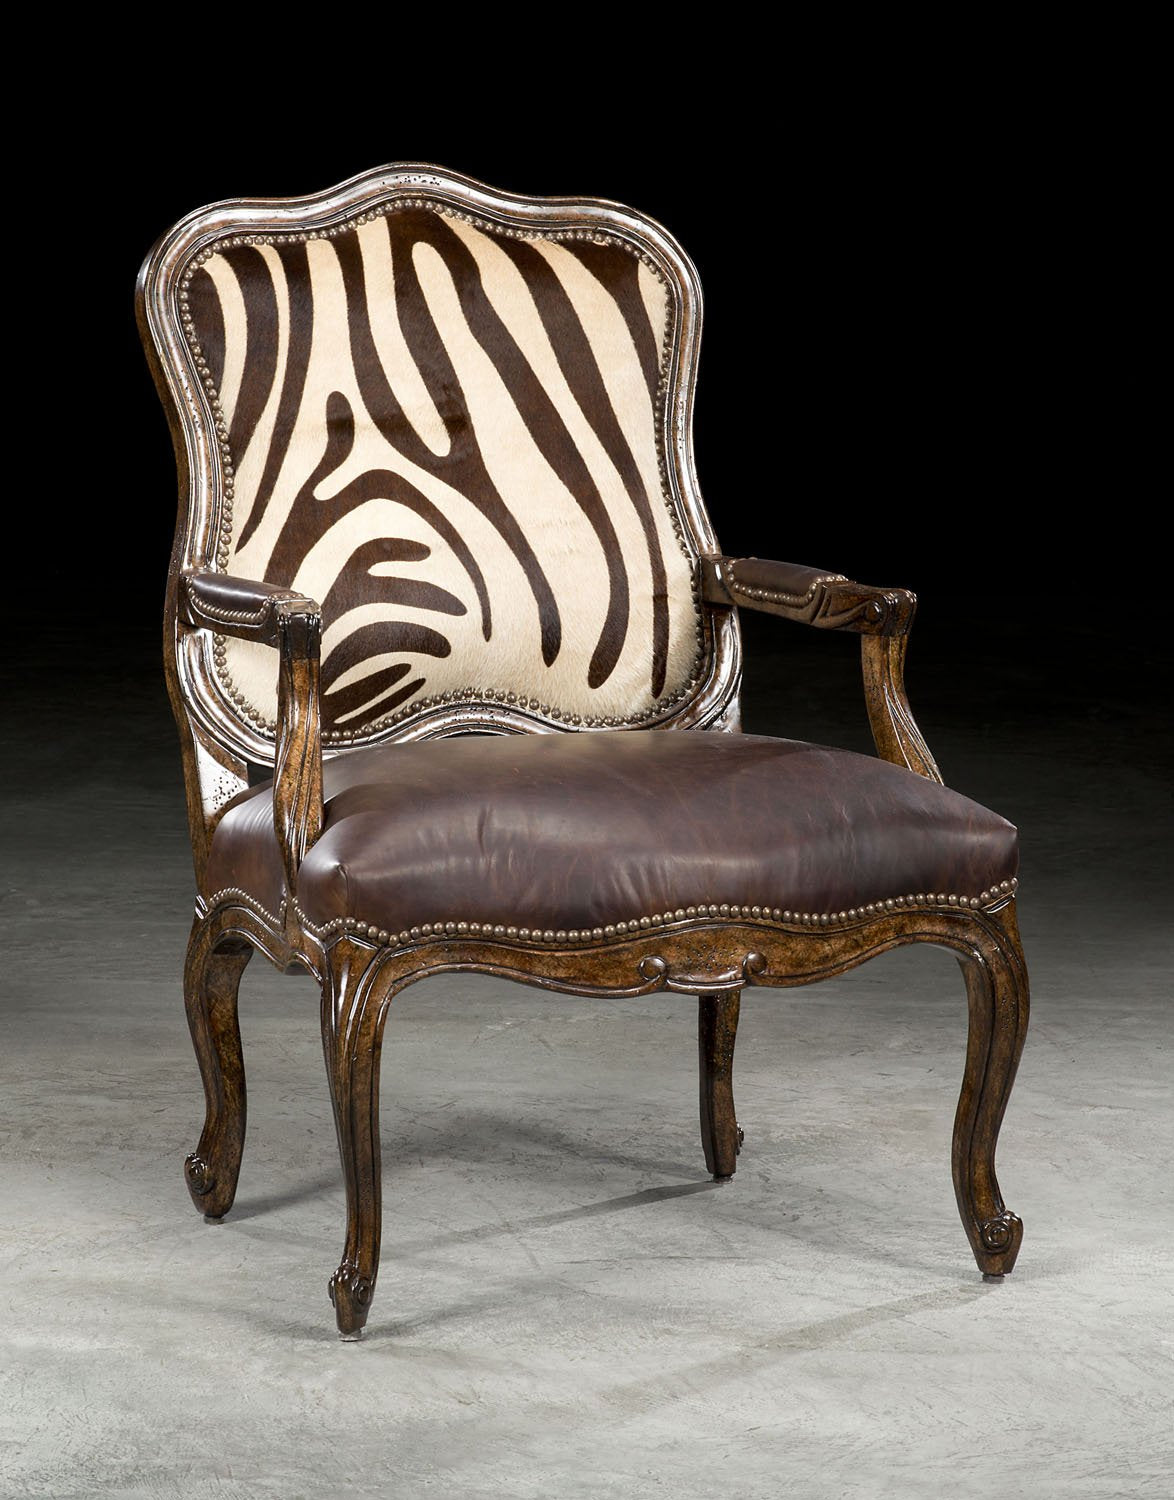 Darcy Chair with Zebra